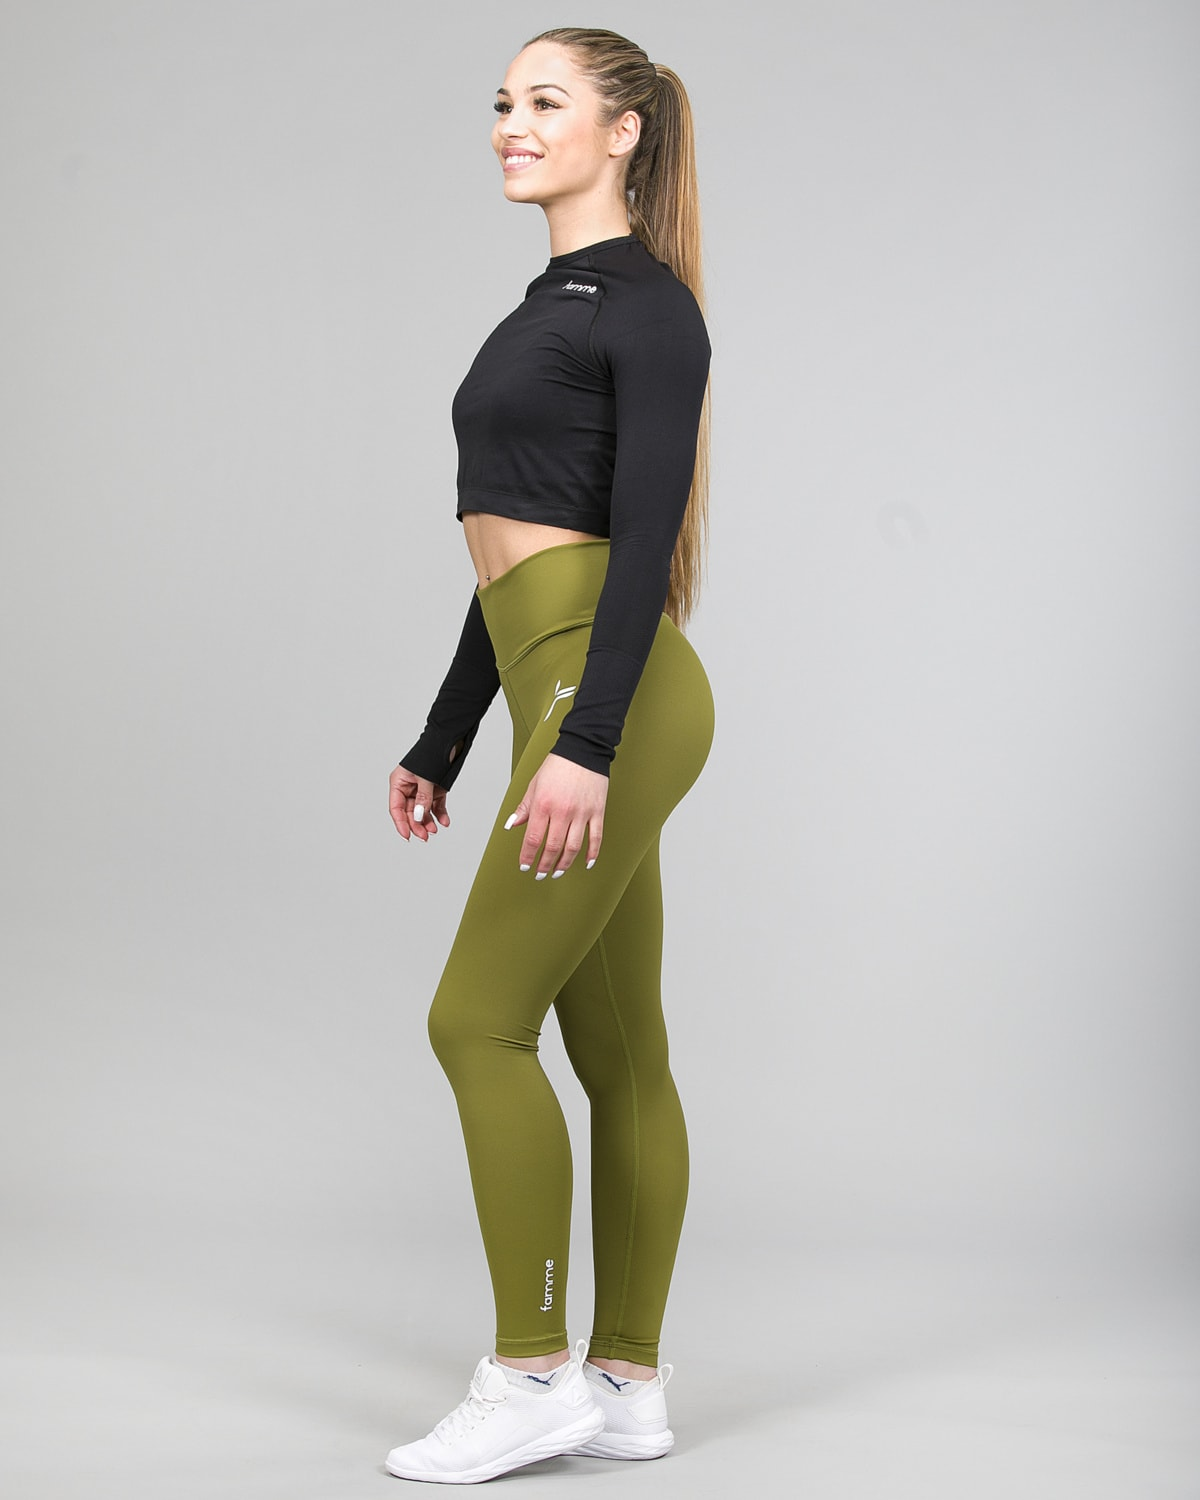 Famme Ocean Crop Top Black ocls-bk and Essential High Waist Leggings Forest Green ehwt-fg b